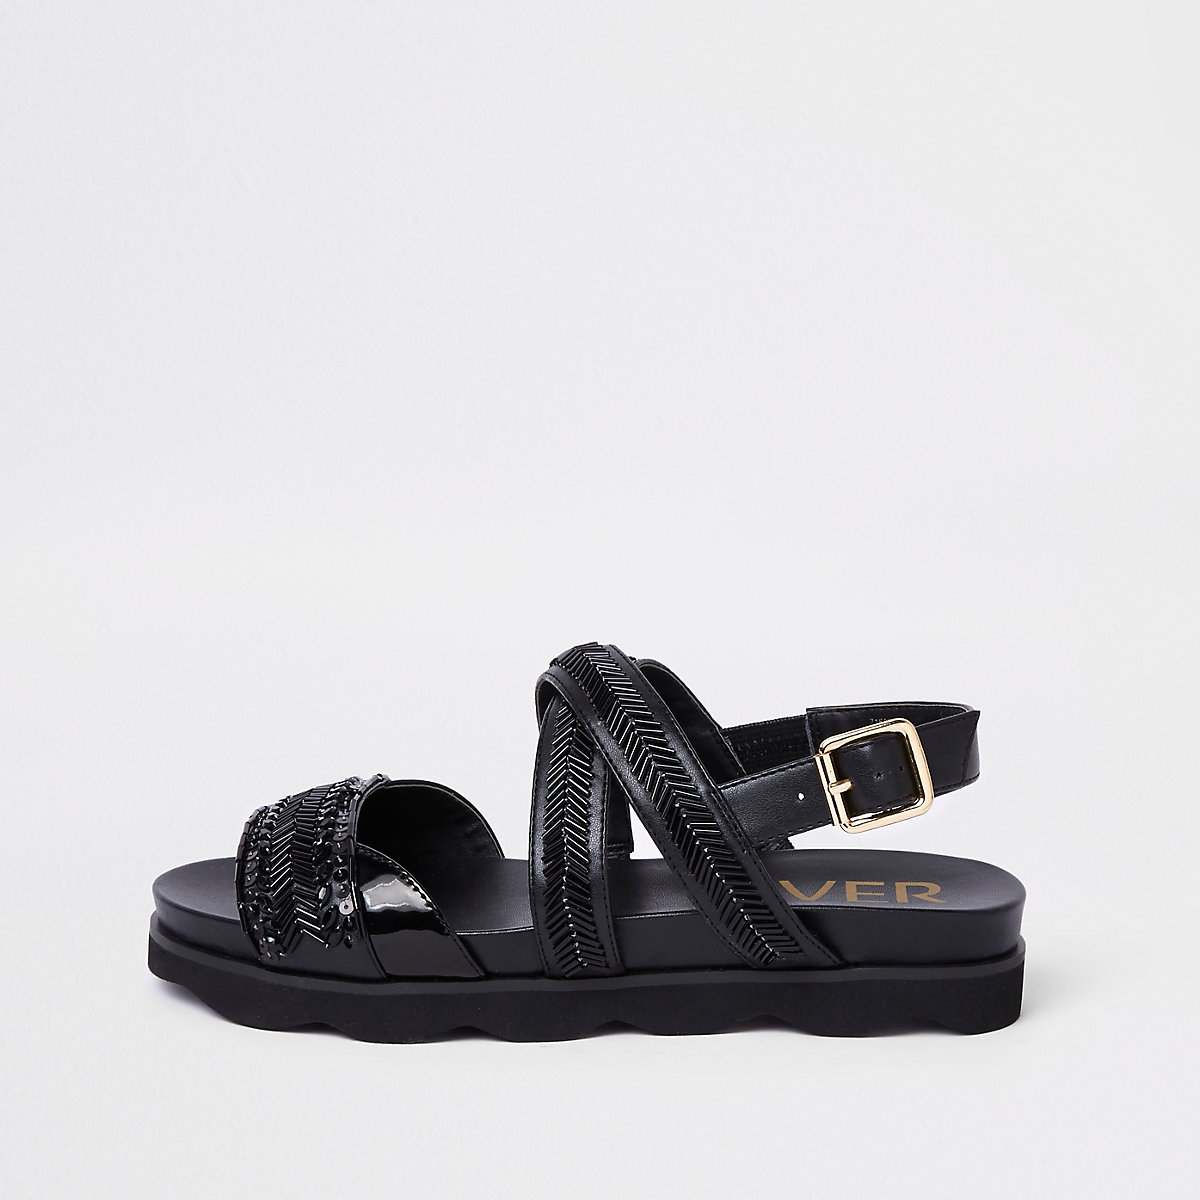 d3637a44153344 Black bead footbed sliders - Sandals - Shoes   Boots - women